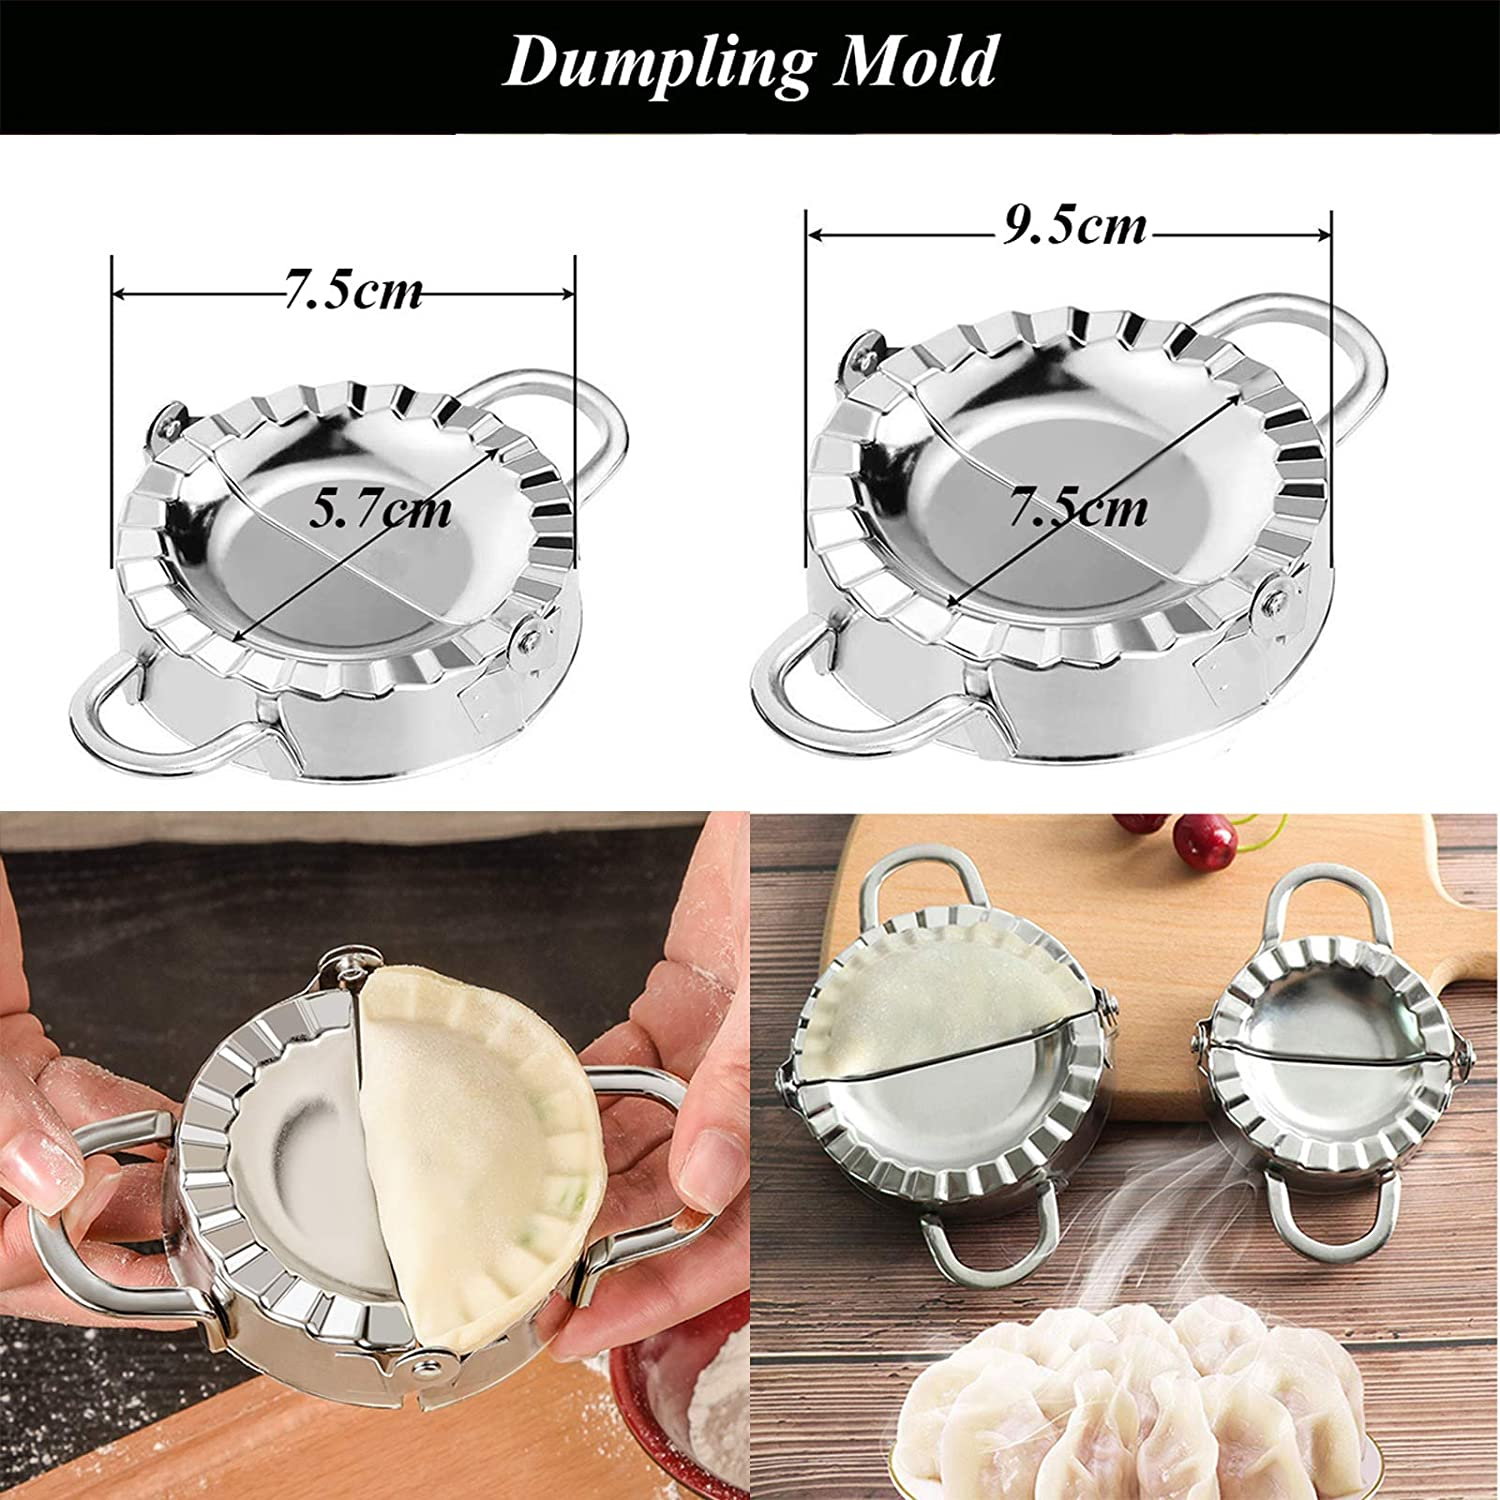 Details about  /Stainless Steel Dumpling Maker Mould Dough Pastry Jiaozi Skin Kitchen Tool Set